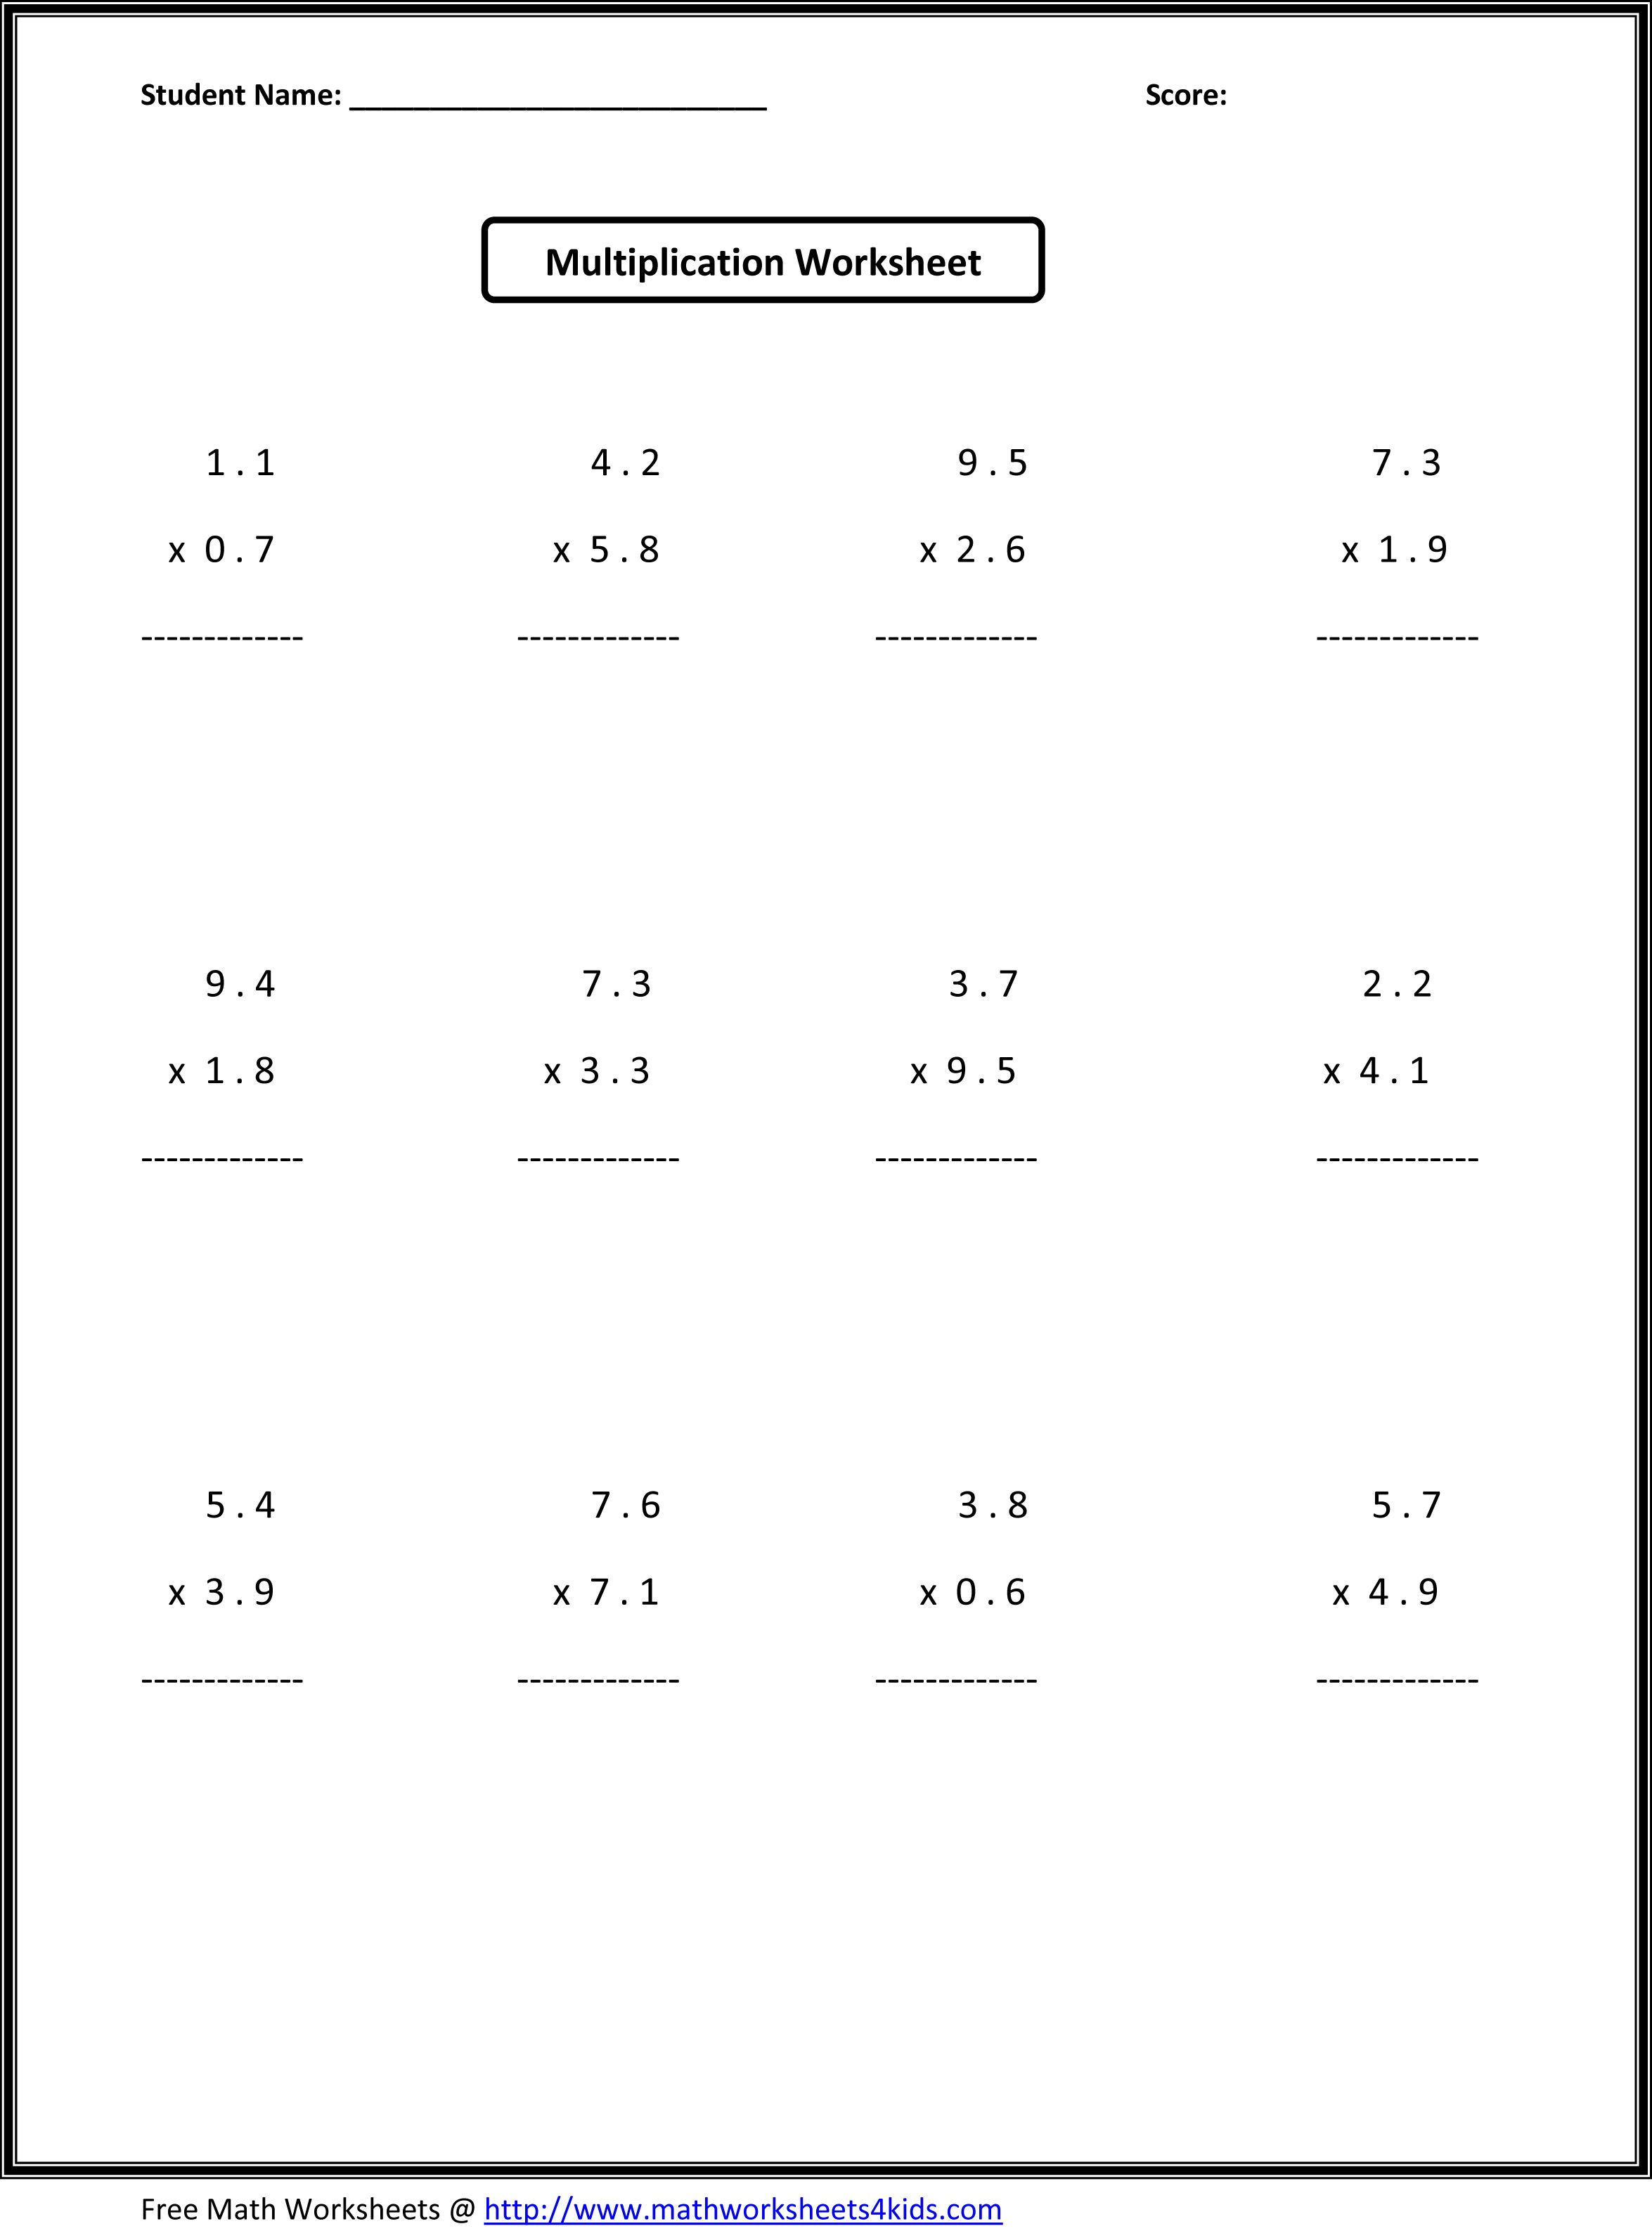 Worksheets Sixth Grade Math Worksheets math decimals worksheets riddles 4th 5th 6th 7th grade sixth have ratio multiplying and dividing fractions algebraic expressions equations inequalities geom